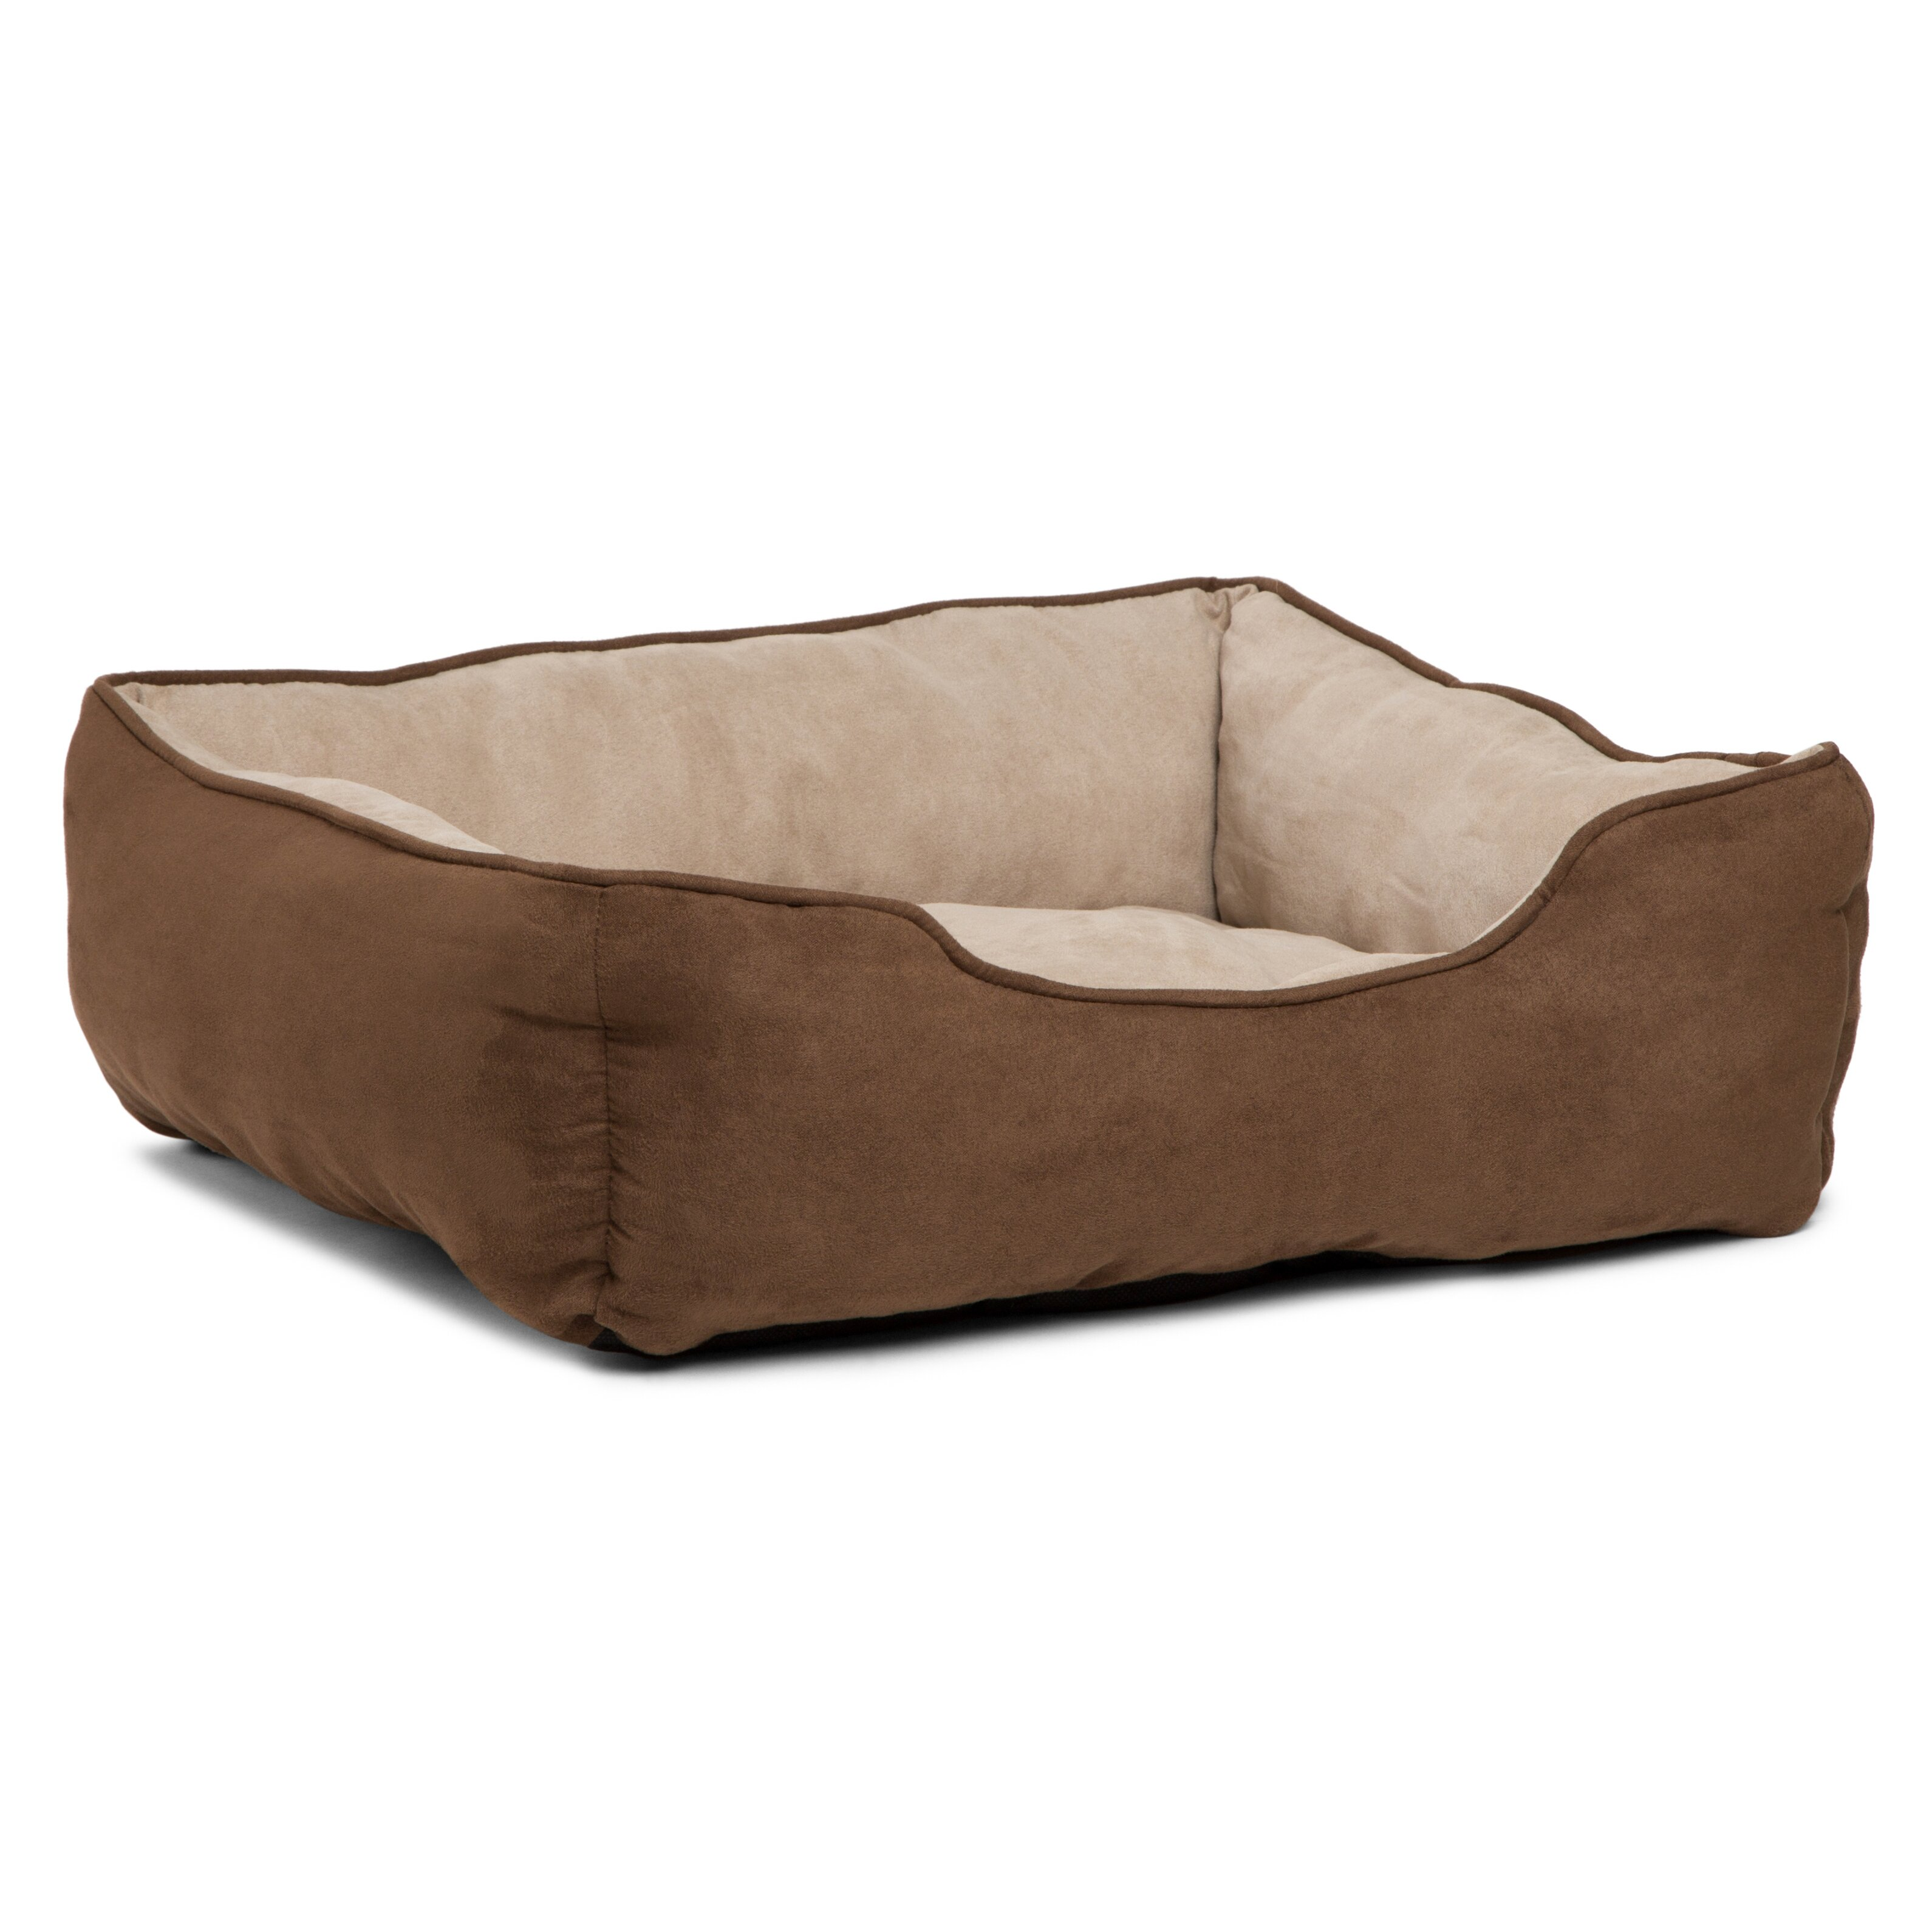 Bolster Dog Beds 28 Images Integrity Bedding Luxury Orthopedic Memory Foam K H